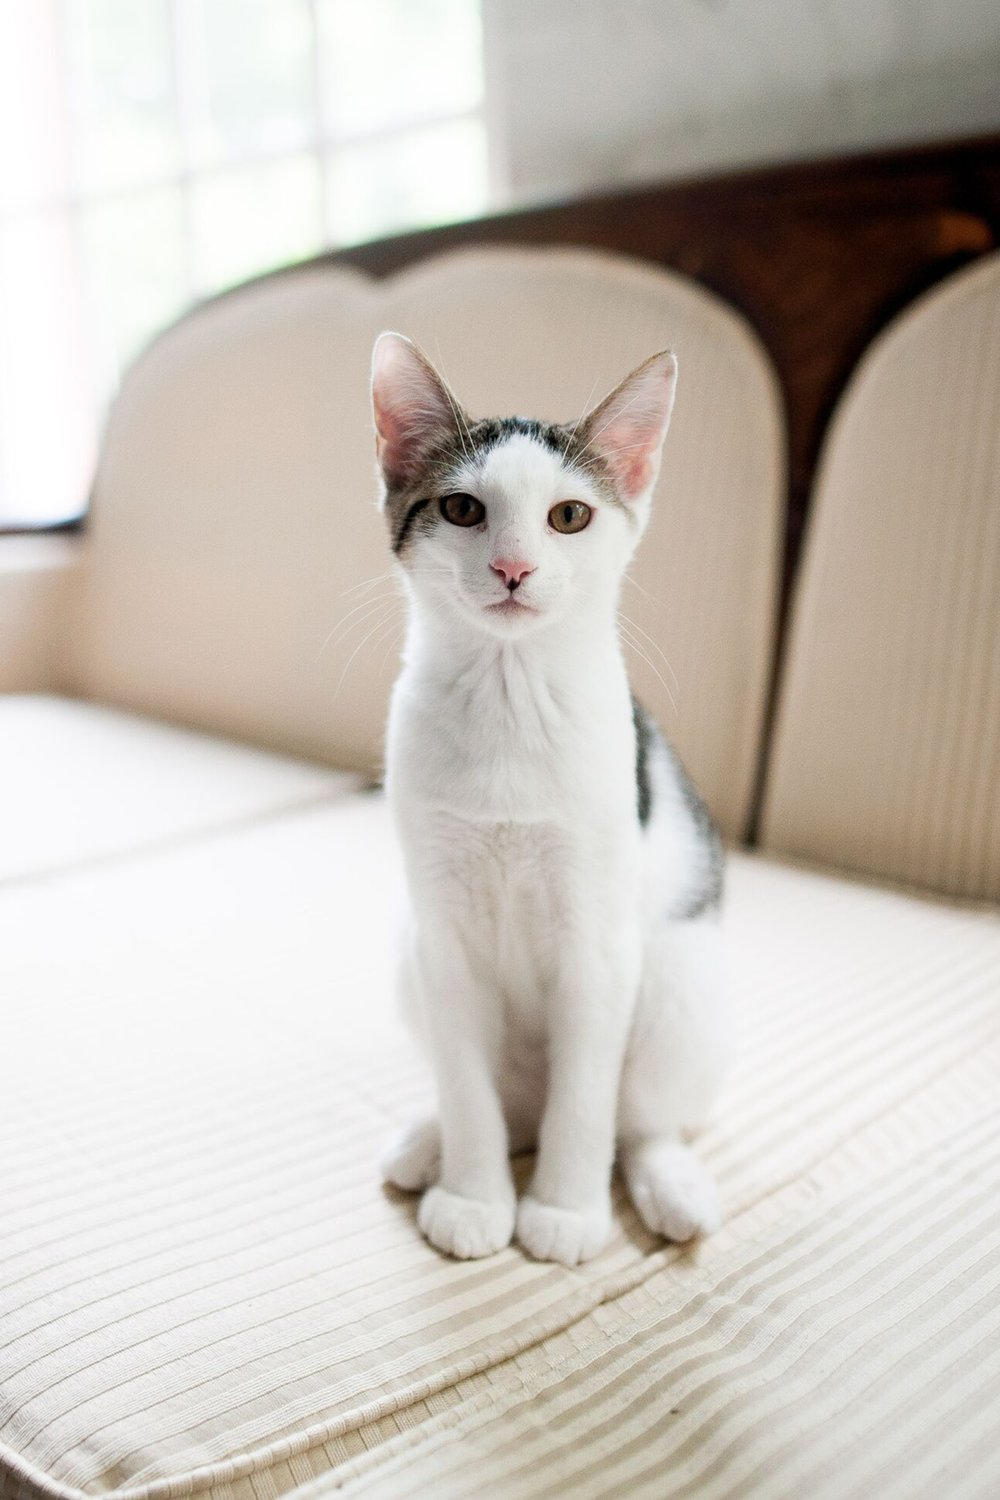 Preparing for a visit to the vet - Click the link below to read about some useful tips on preparing for the vet in a way that reduces fear, anxiety and stress in your feline friend.http://www.haveweseenyourcatlately.com/Visiting_Your_Vet.html